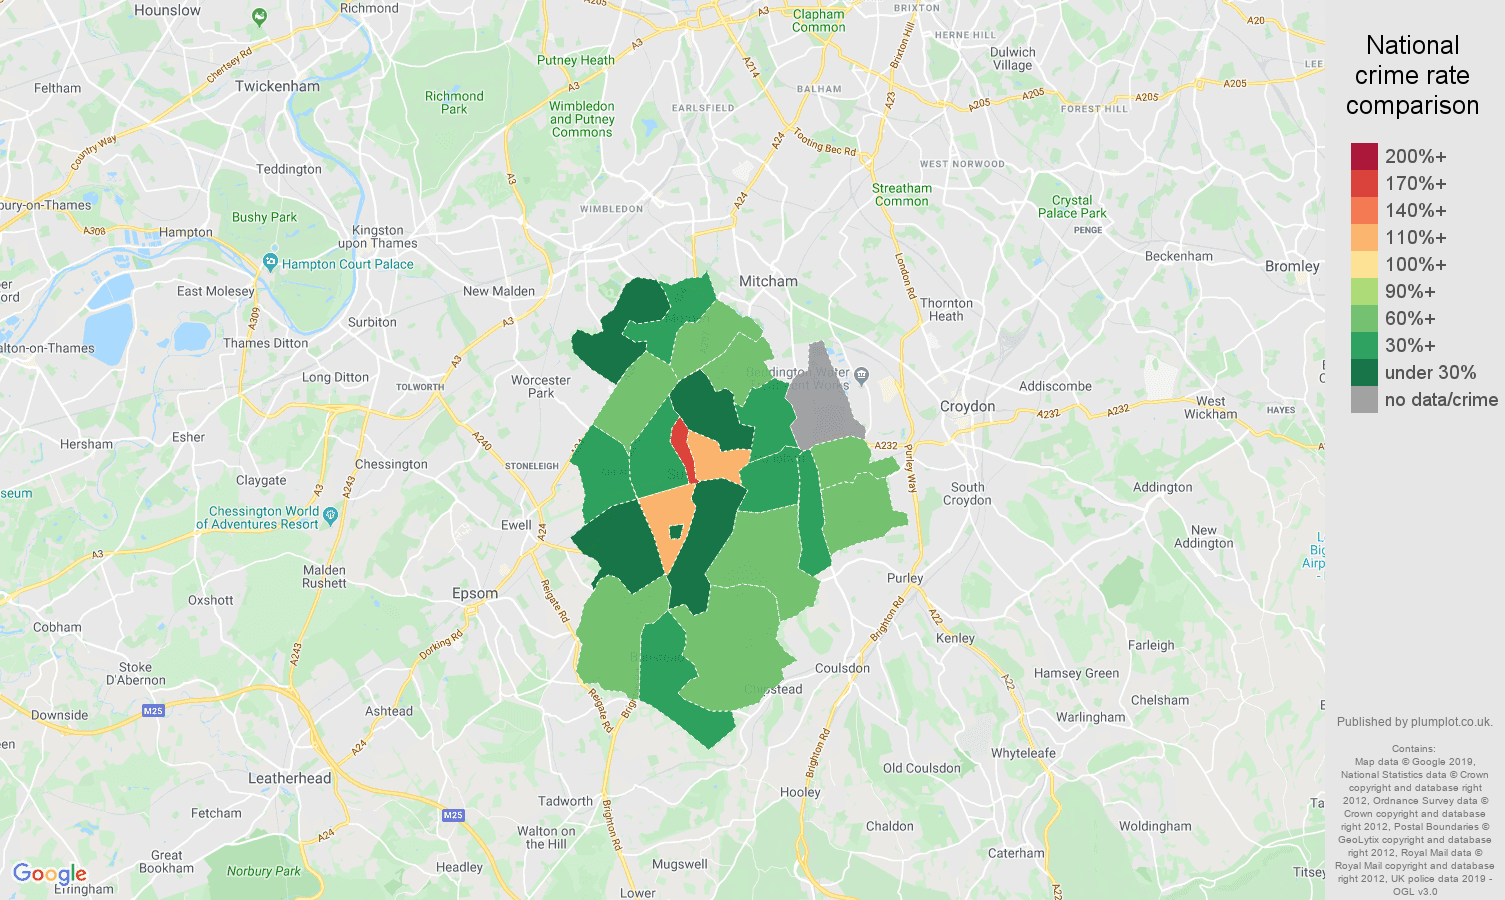 Sutton possession of weapons crime rate comparison map